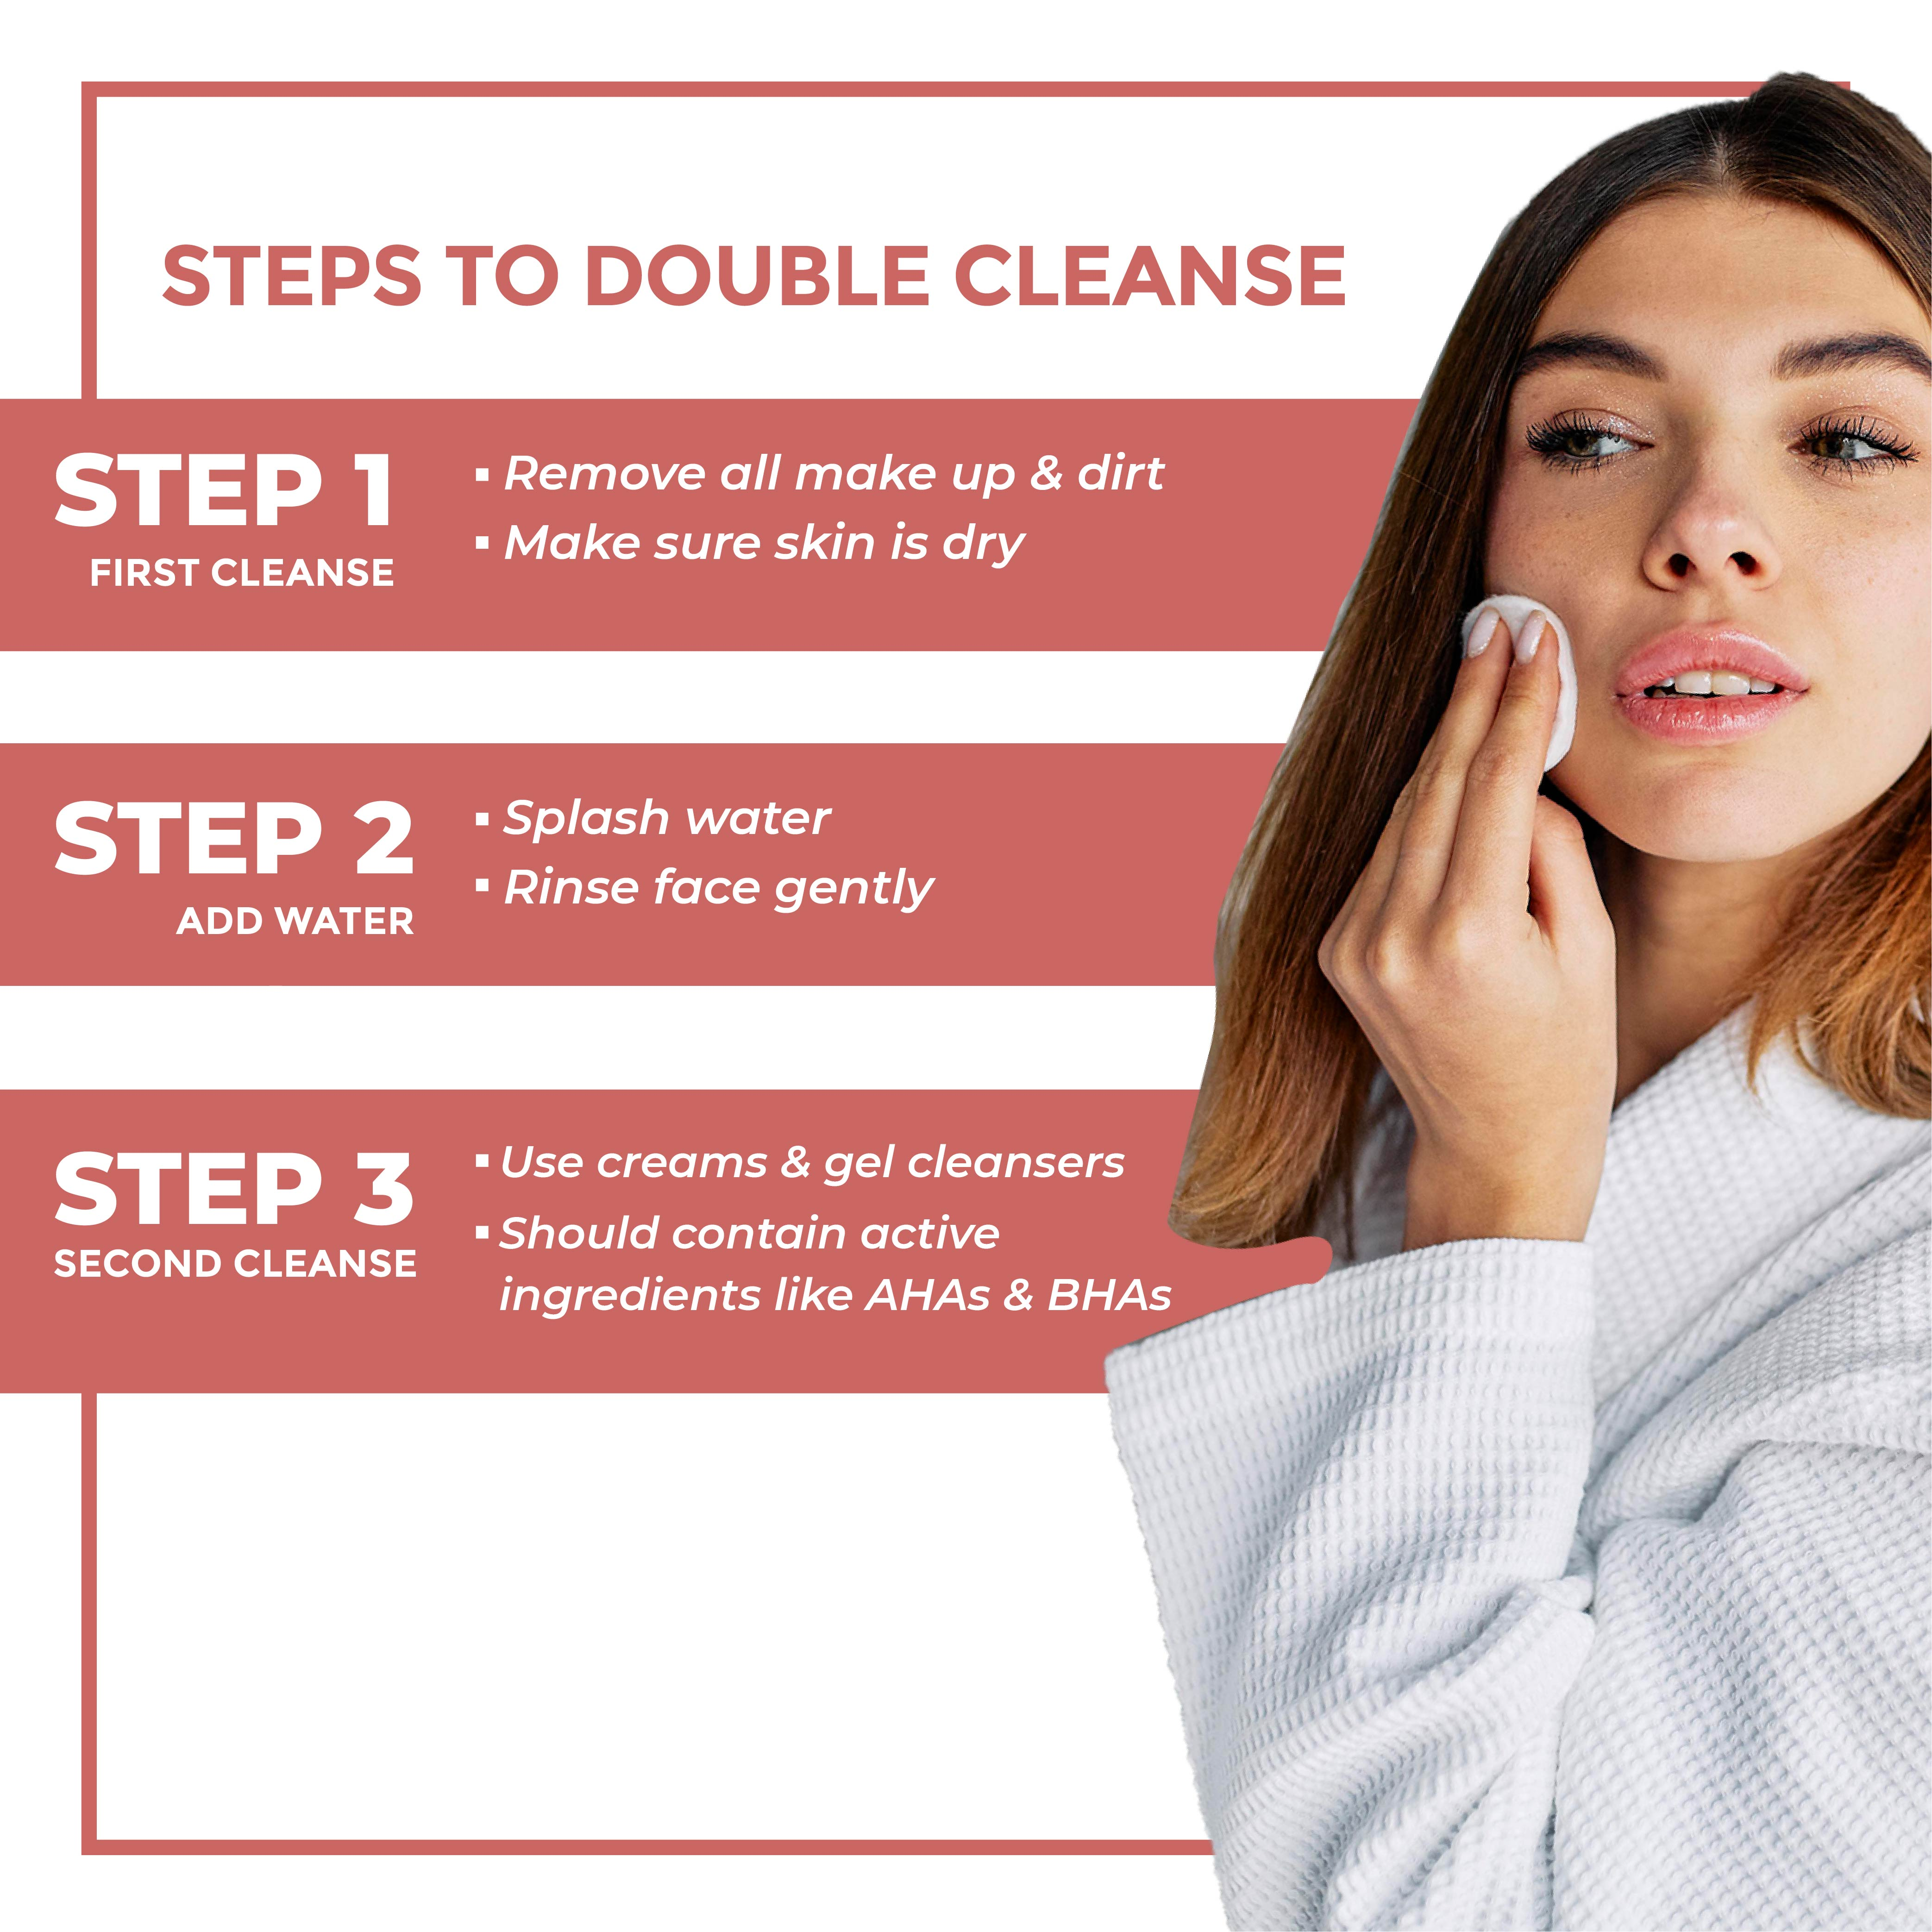 This a link to the steps for double cleansing